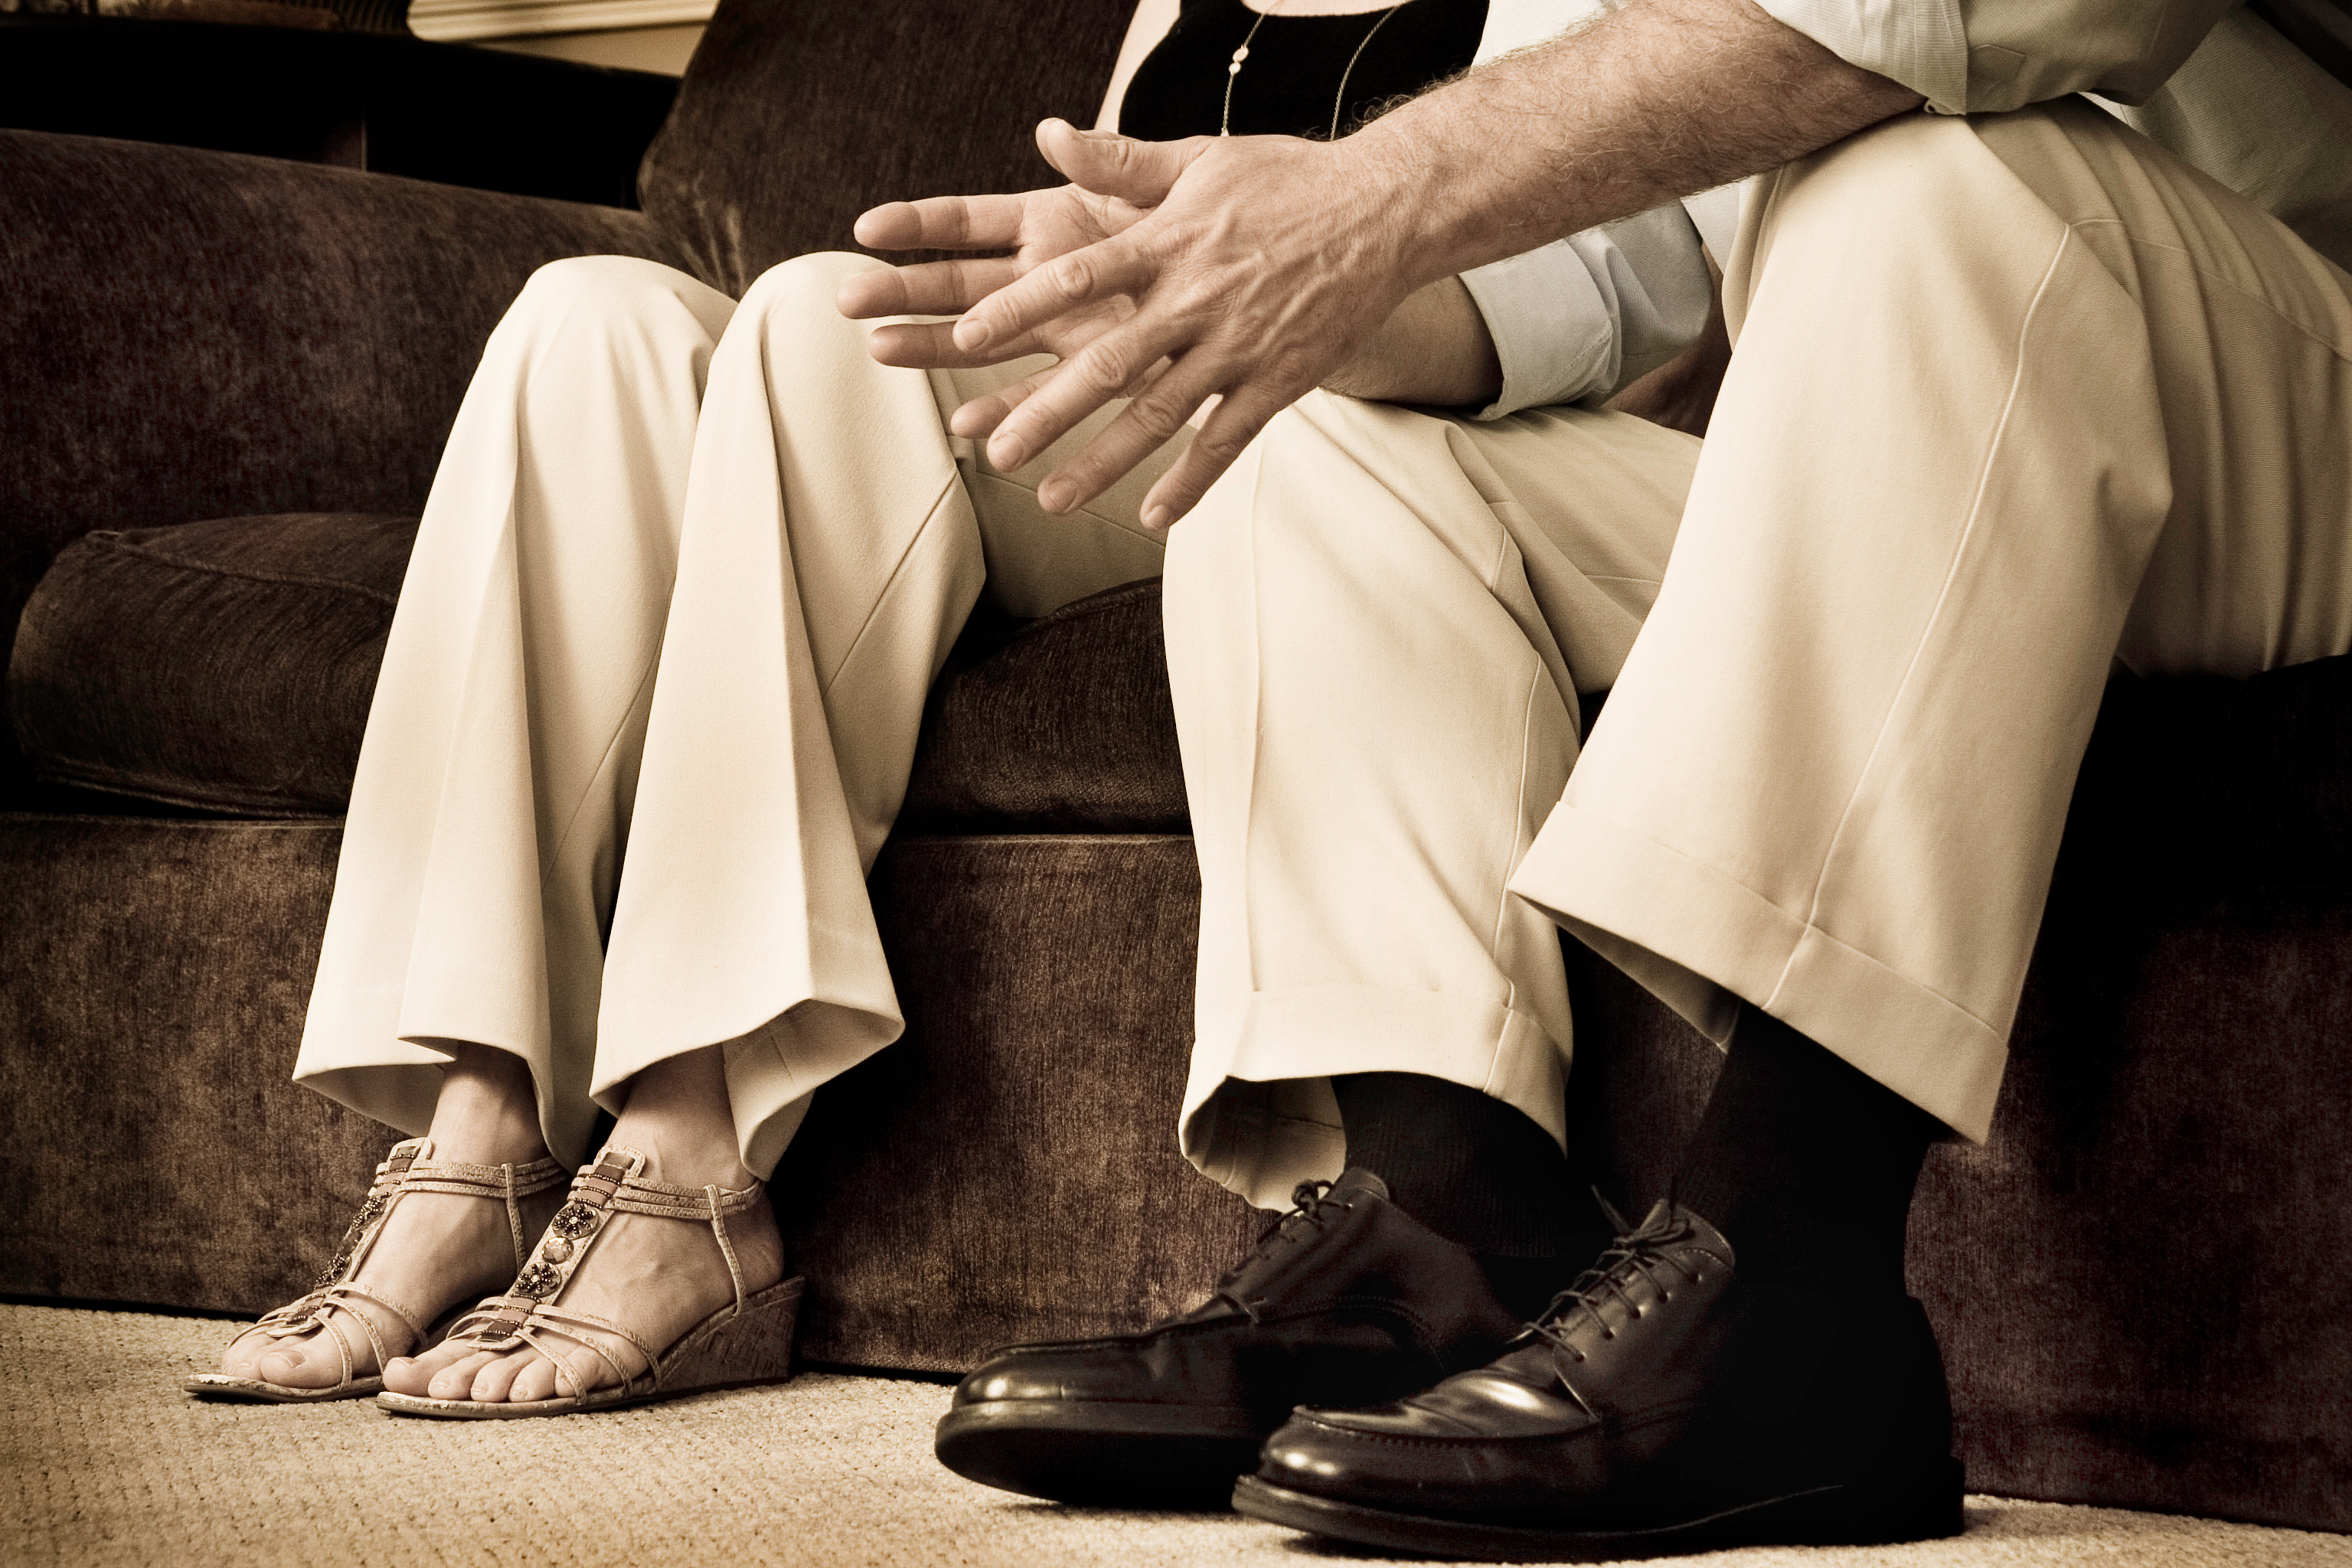 Relationship Counseling in Smyrna, GA for couples.